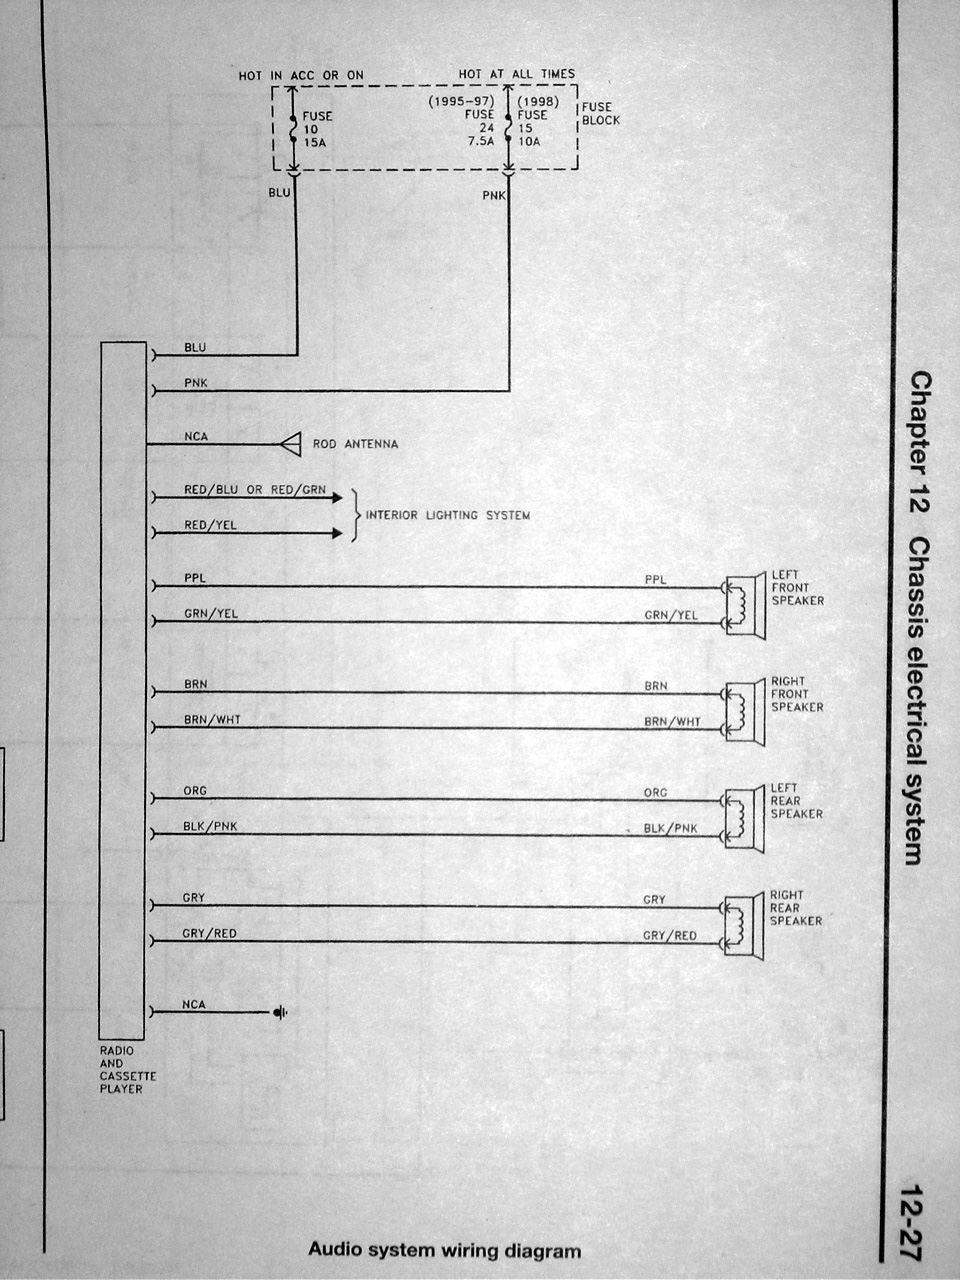 medium resolution of wiring diagram thread useful info nissan forum 2008 pathfinder headlight wiring harness nissan forum nissan